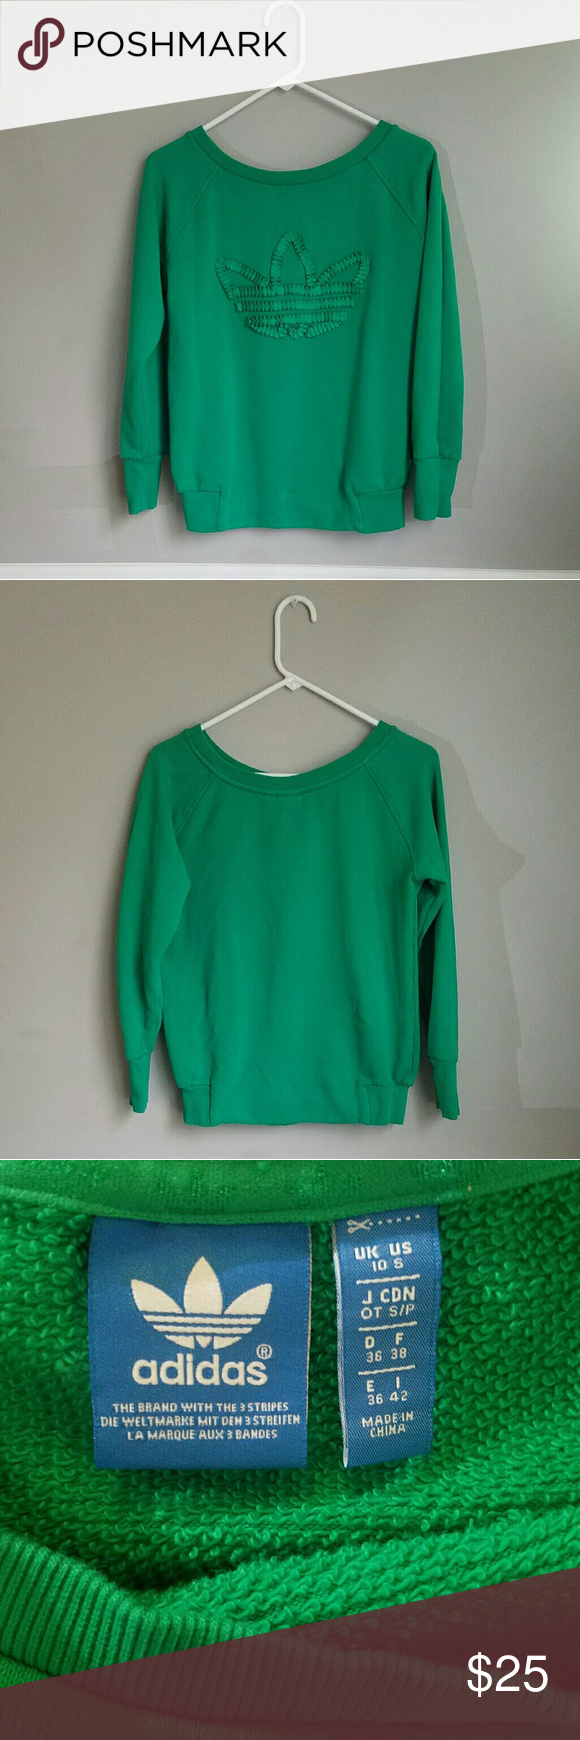 6376bd43ce99 Size small. Green. Worn a few times. No flaws. Flat lay measurements  Pit  to pit  20